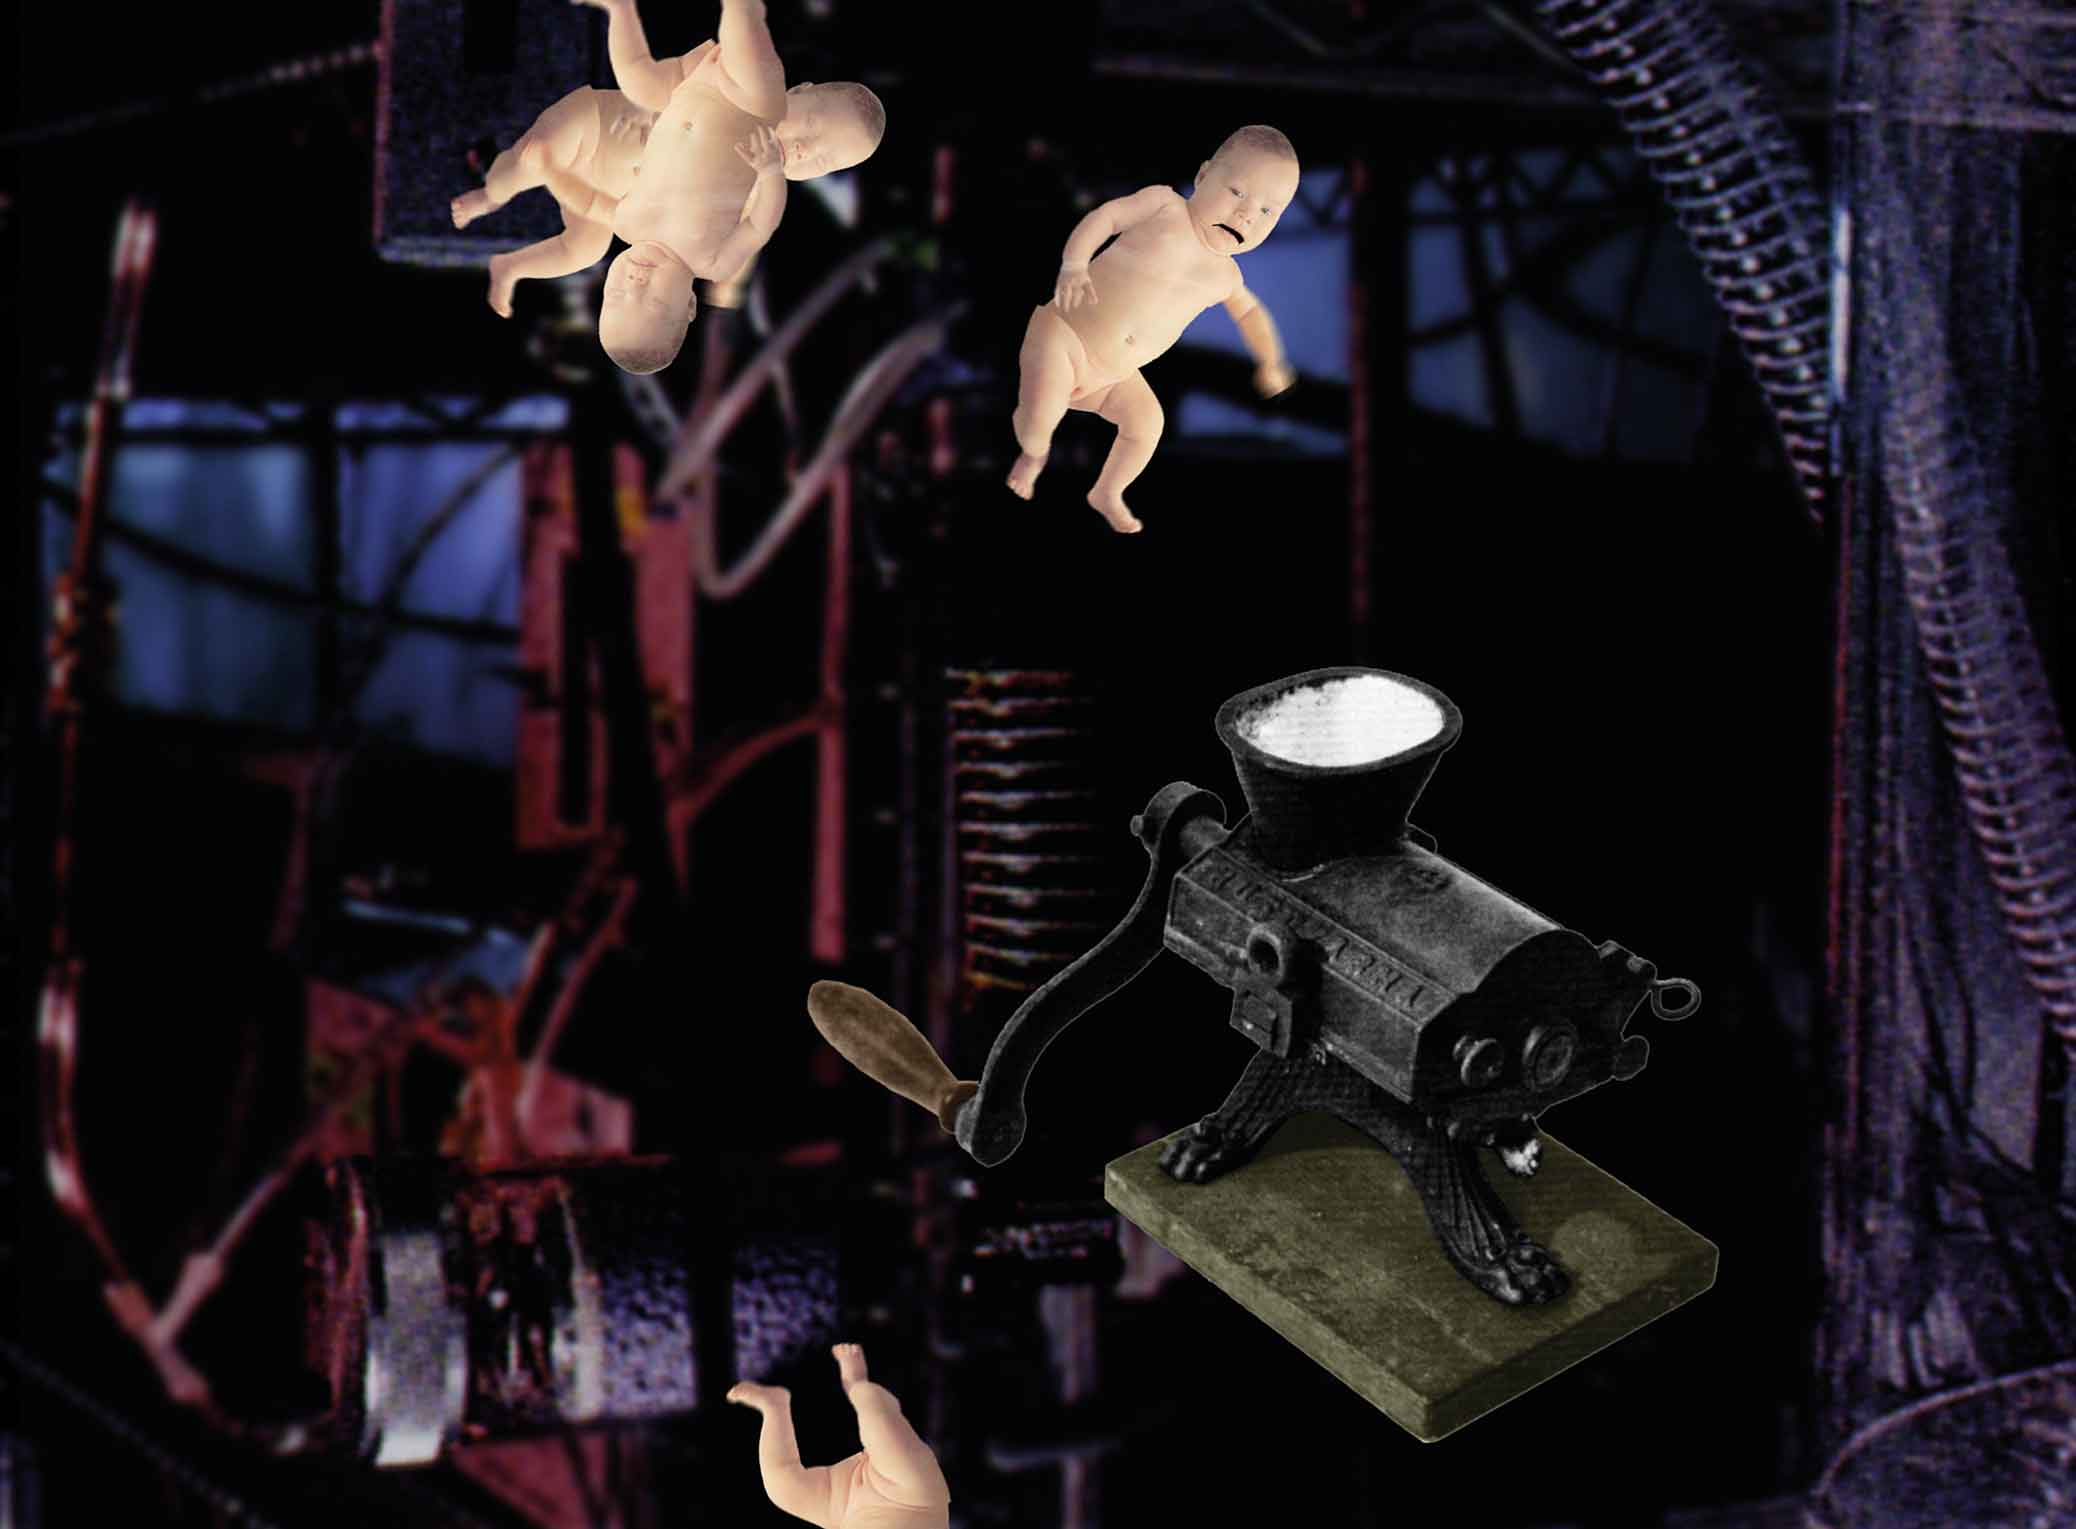 Perfume Factory, film still from animation, infants approaching mincer.